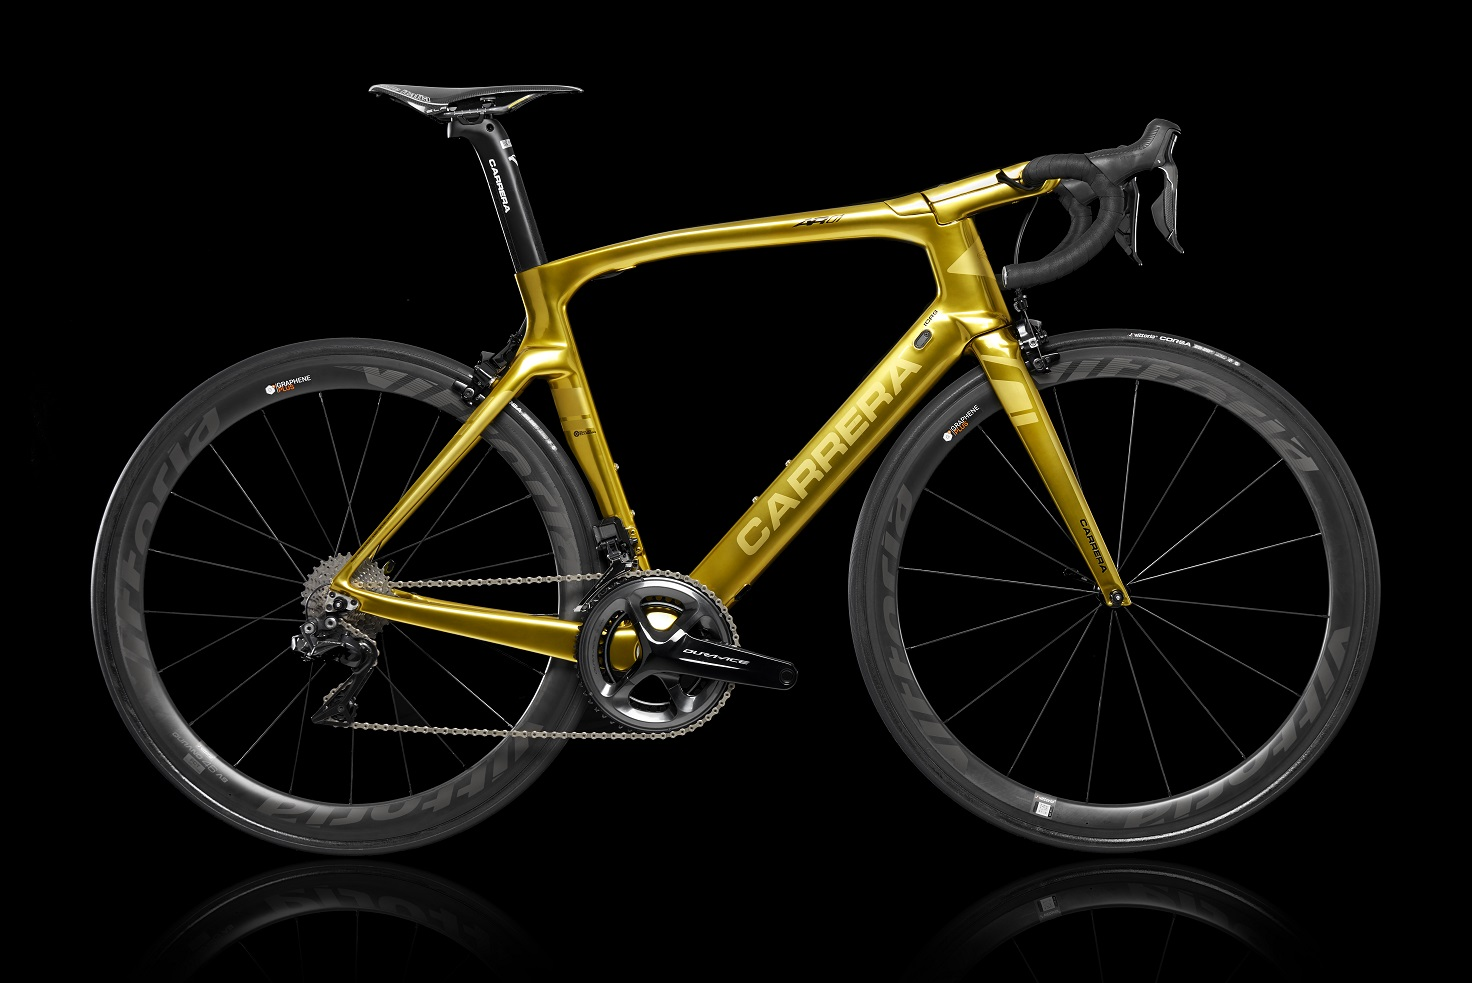 Carrera Bicycle The True Cycling Experience